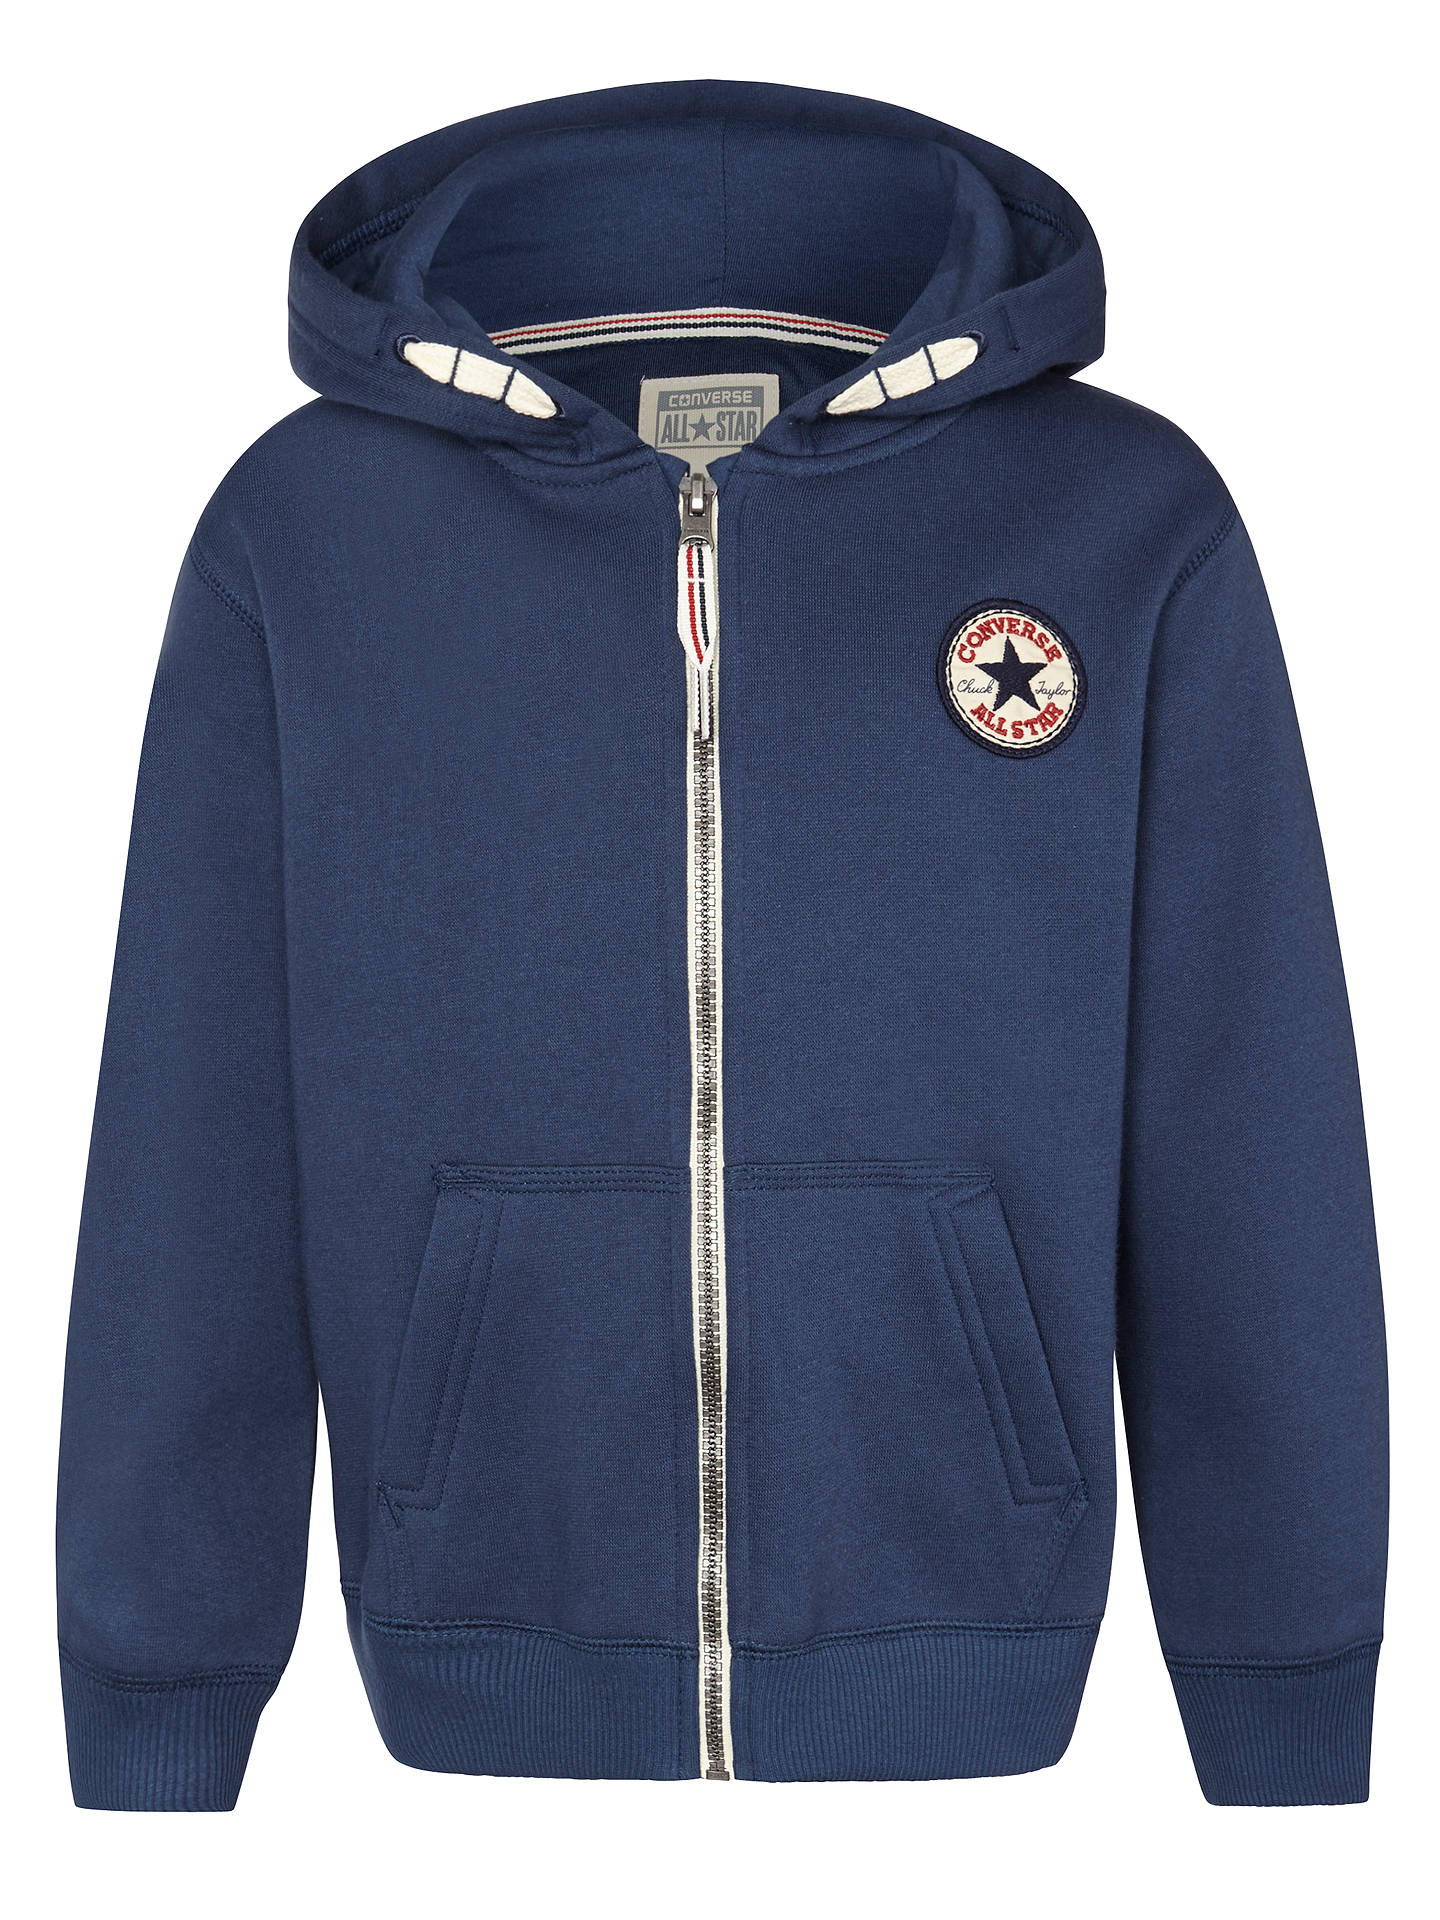 a7e3a05a36d4 Converse All Star Zip Hoodie at John Lewis   Partners